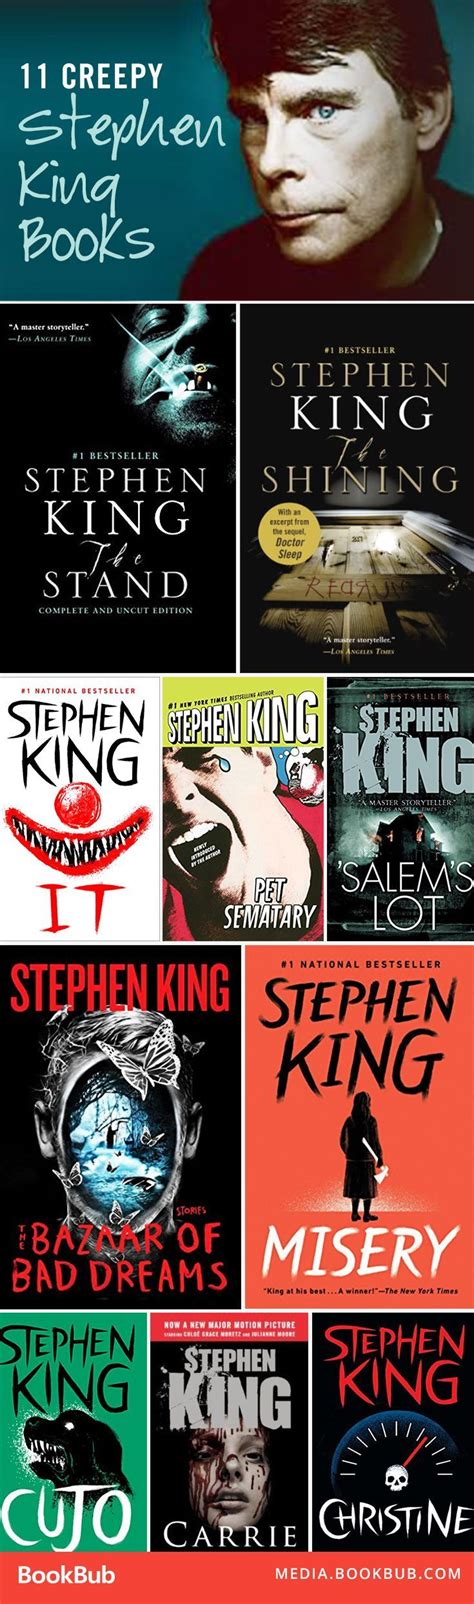 best stephen king books 204 best stephen king images on stephen king